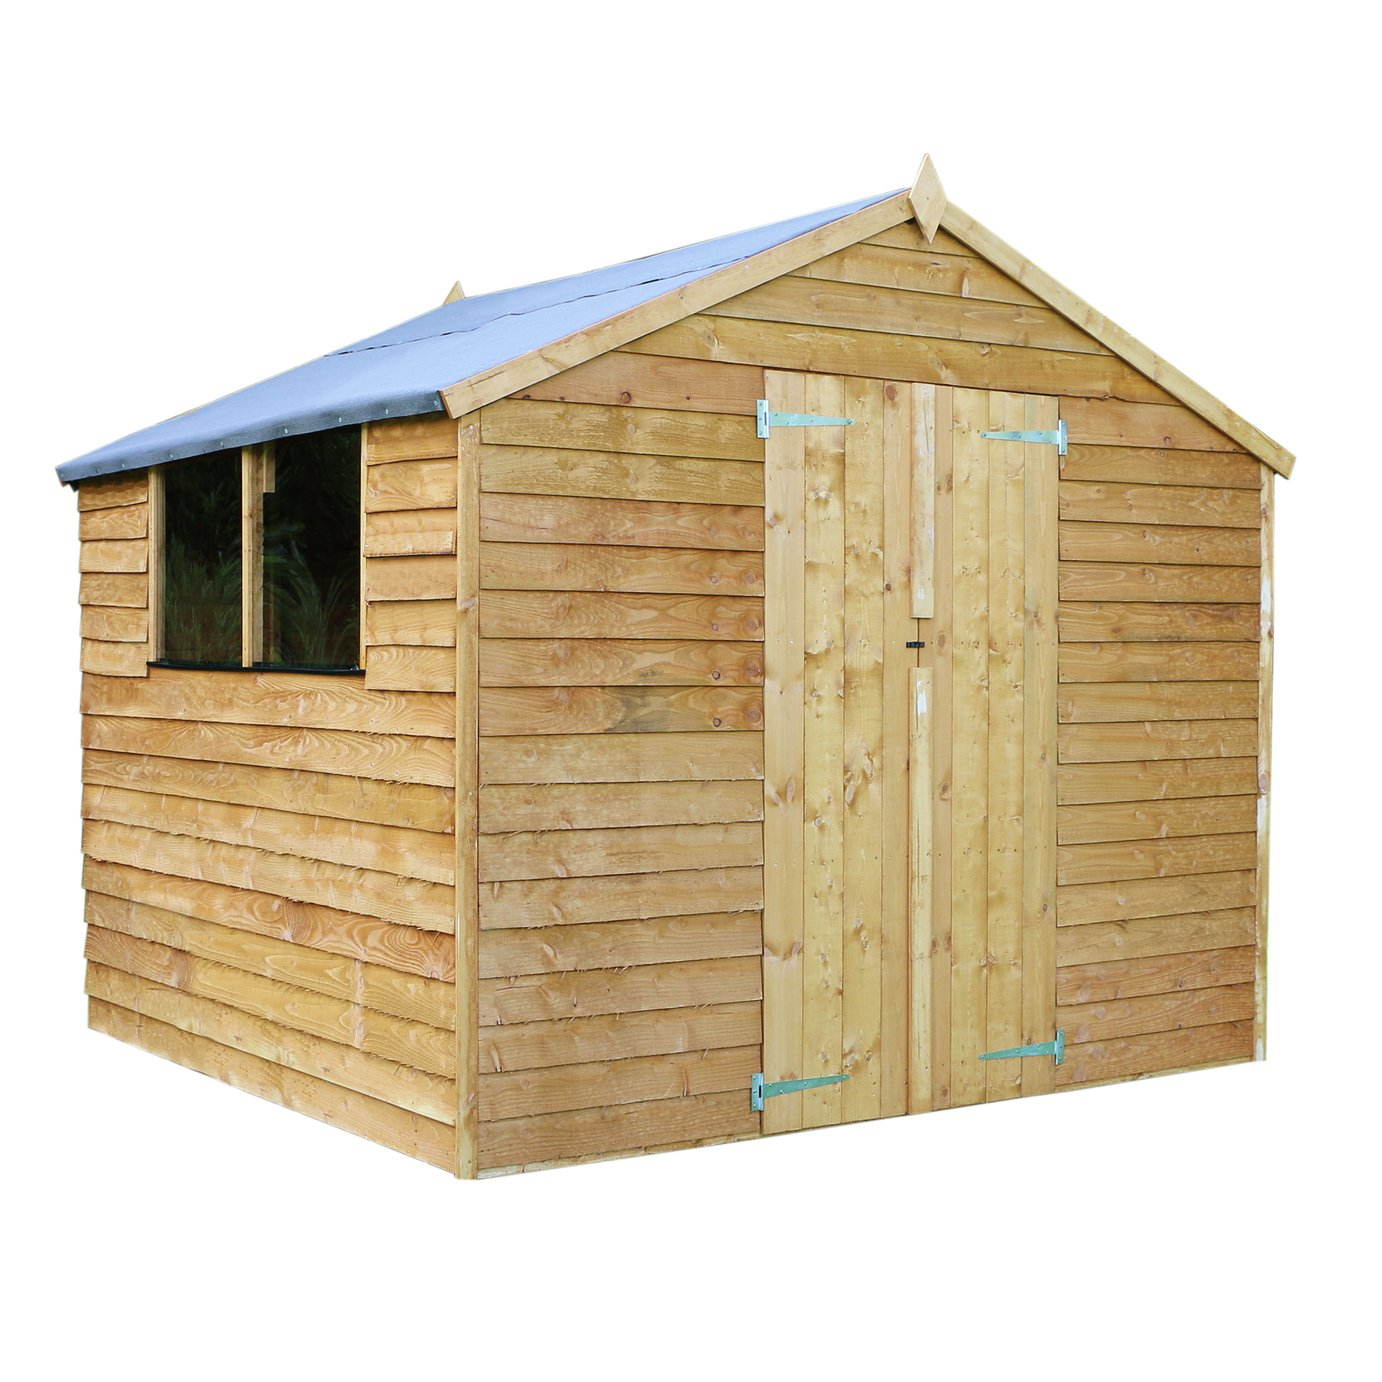 Mercia 8ft x 8ft Overlap Apex Garden Shed.